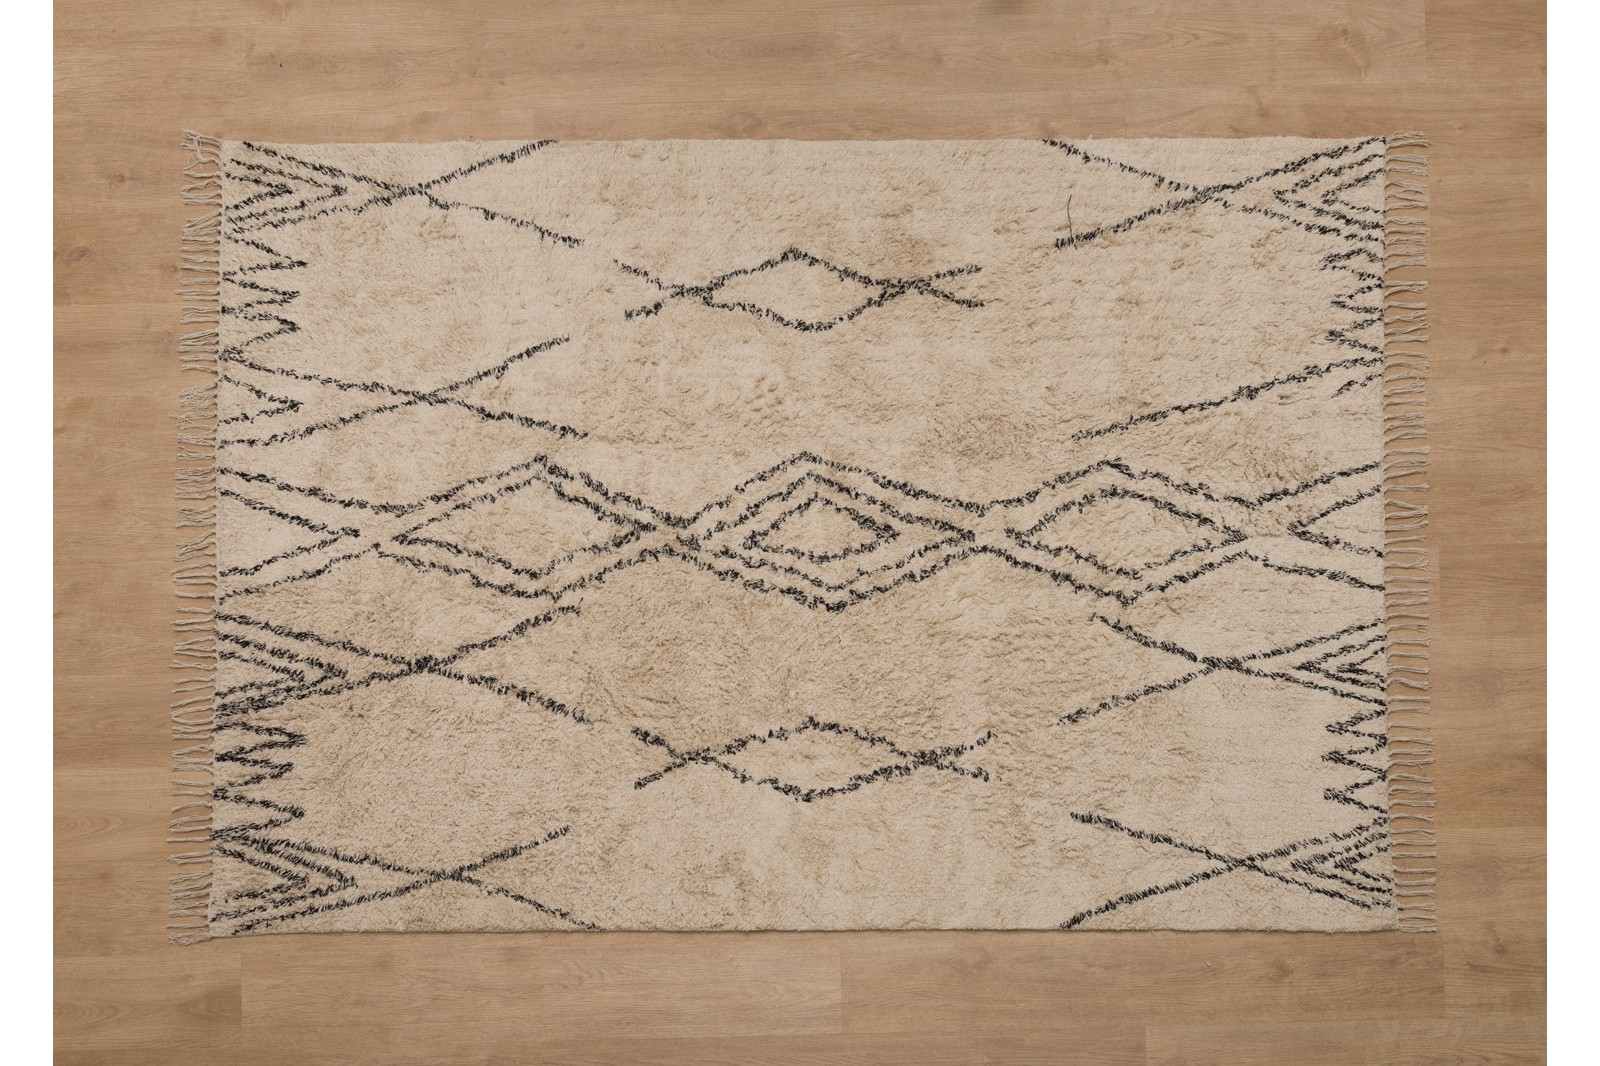 AGNES RUG. COTTON AND GEOMETRIC PATTERNS